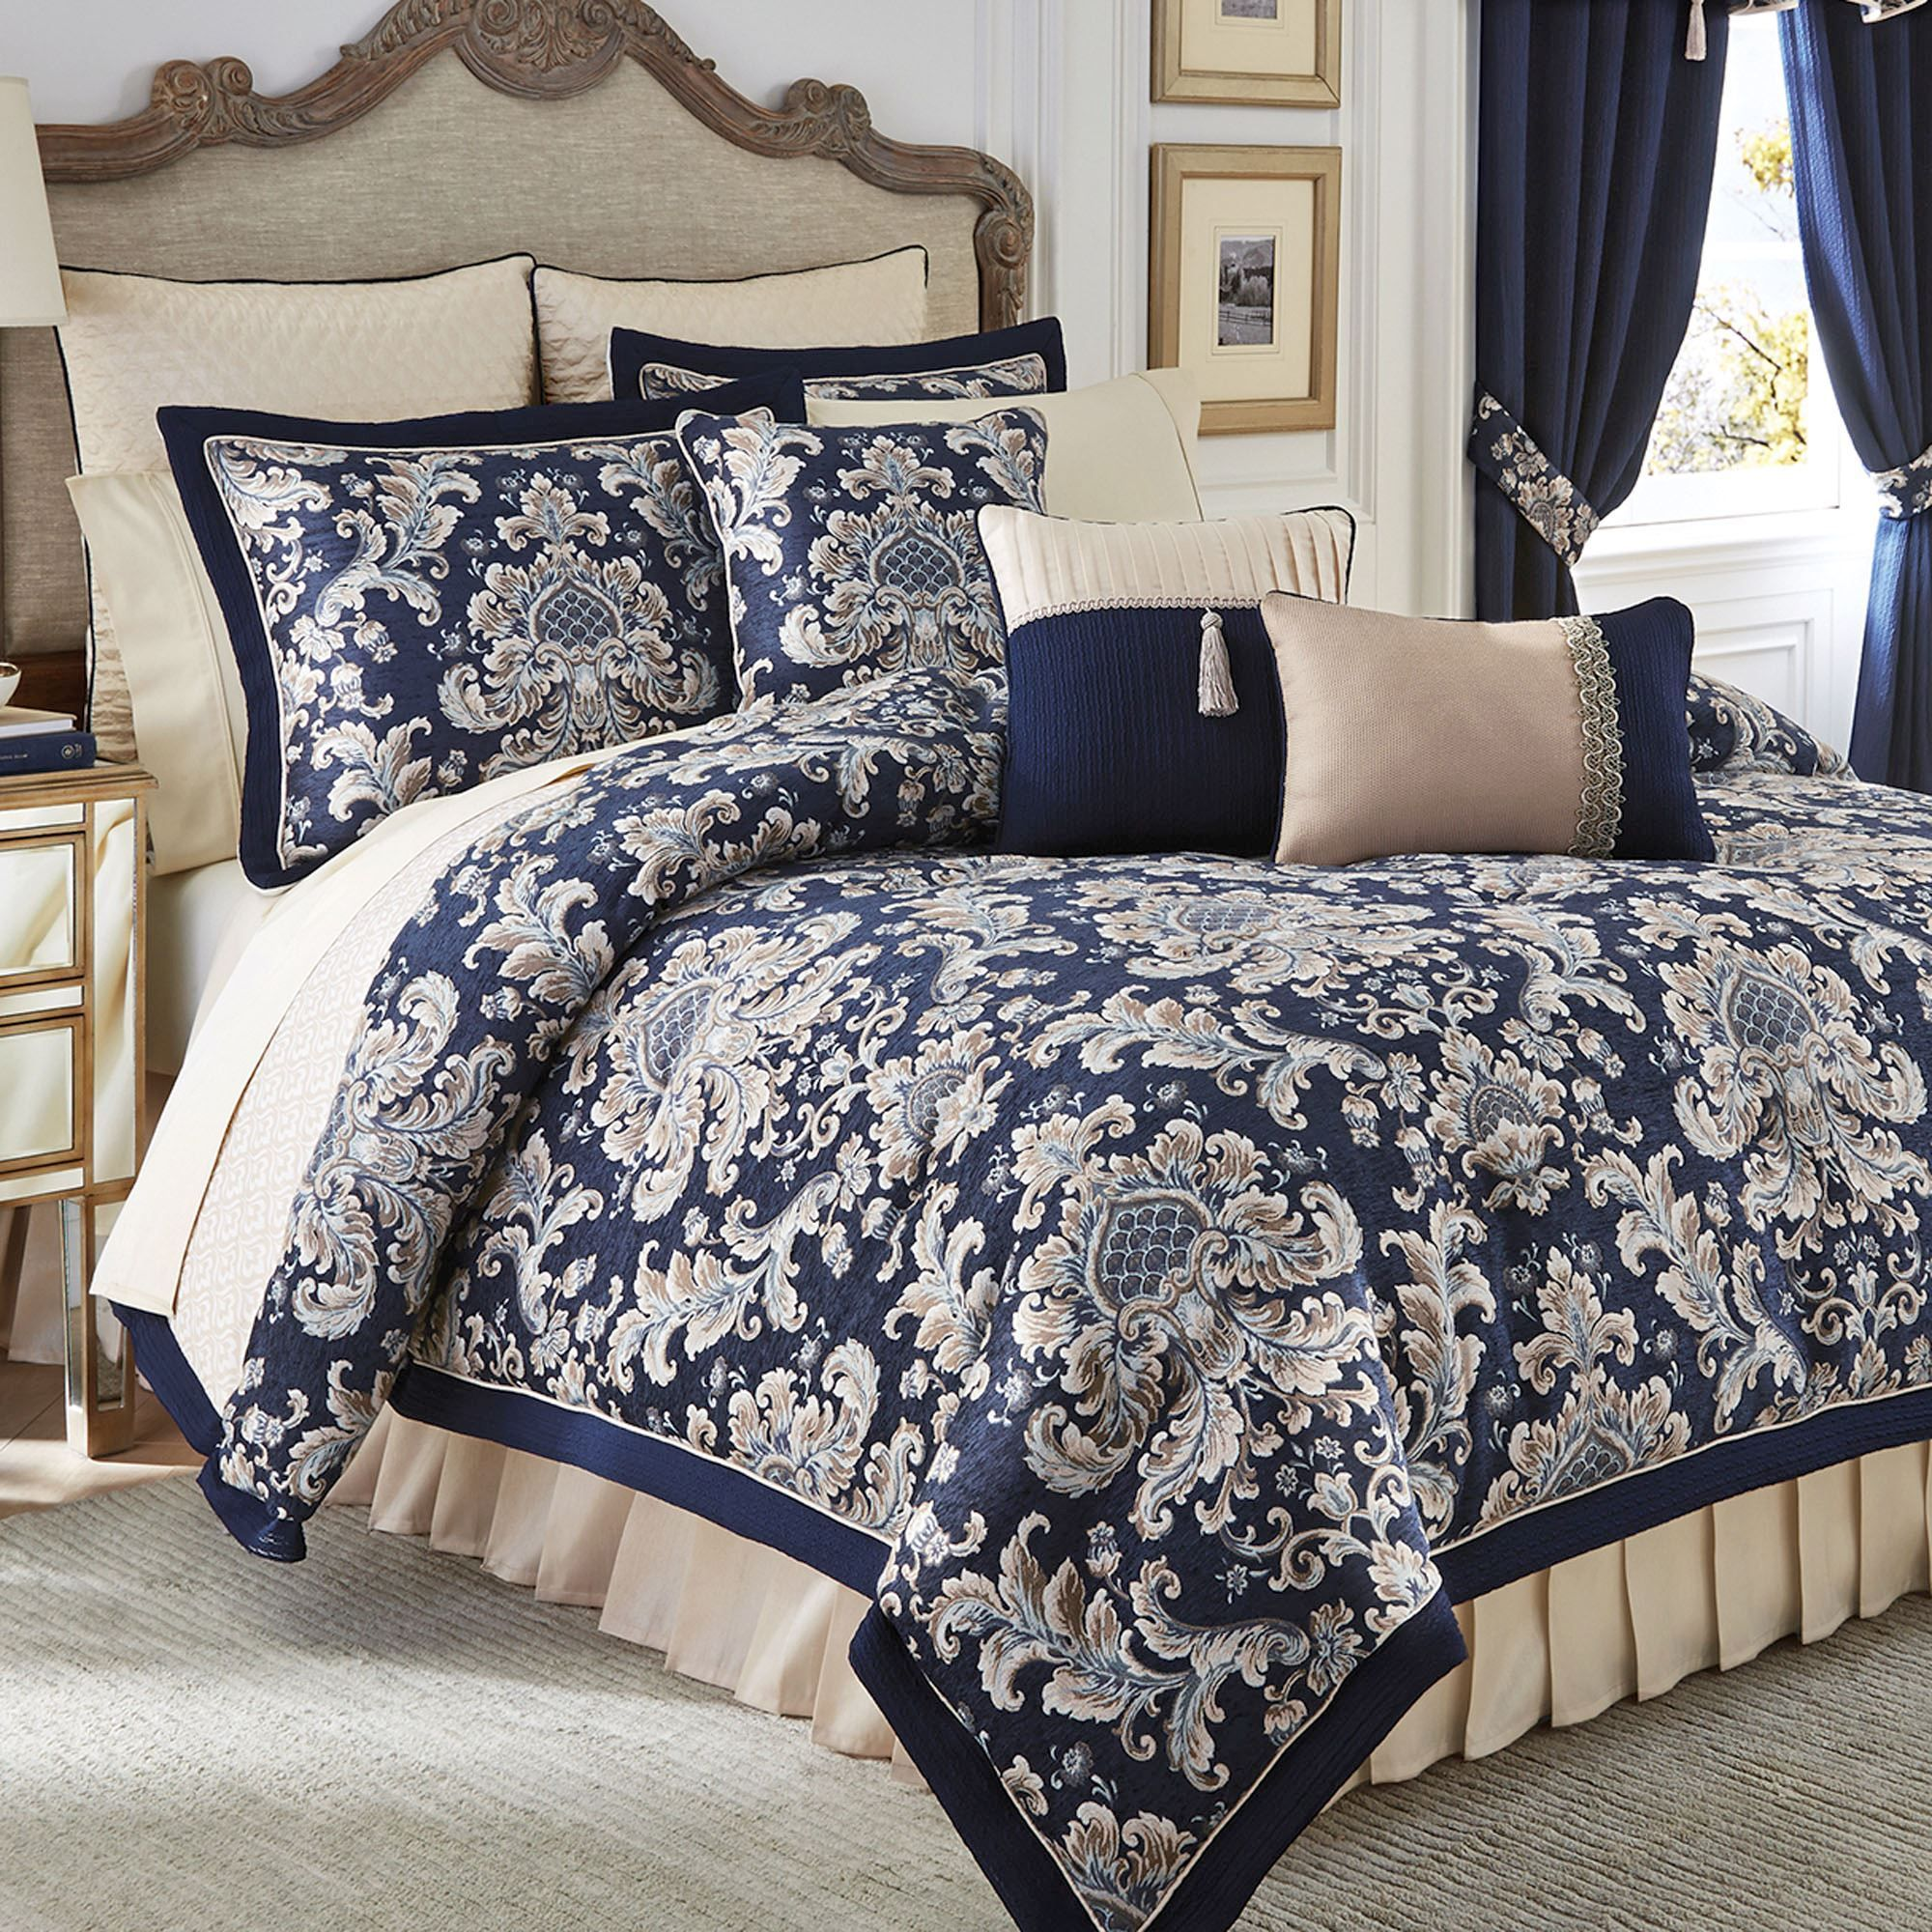 sets comp online croscill src product a adelia only belk bedding collection comforter desktop dwp zoom p layer